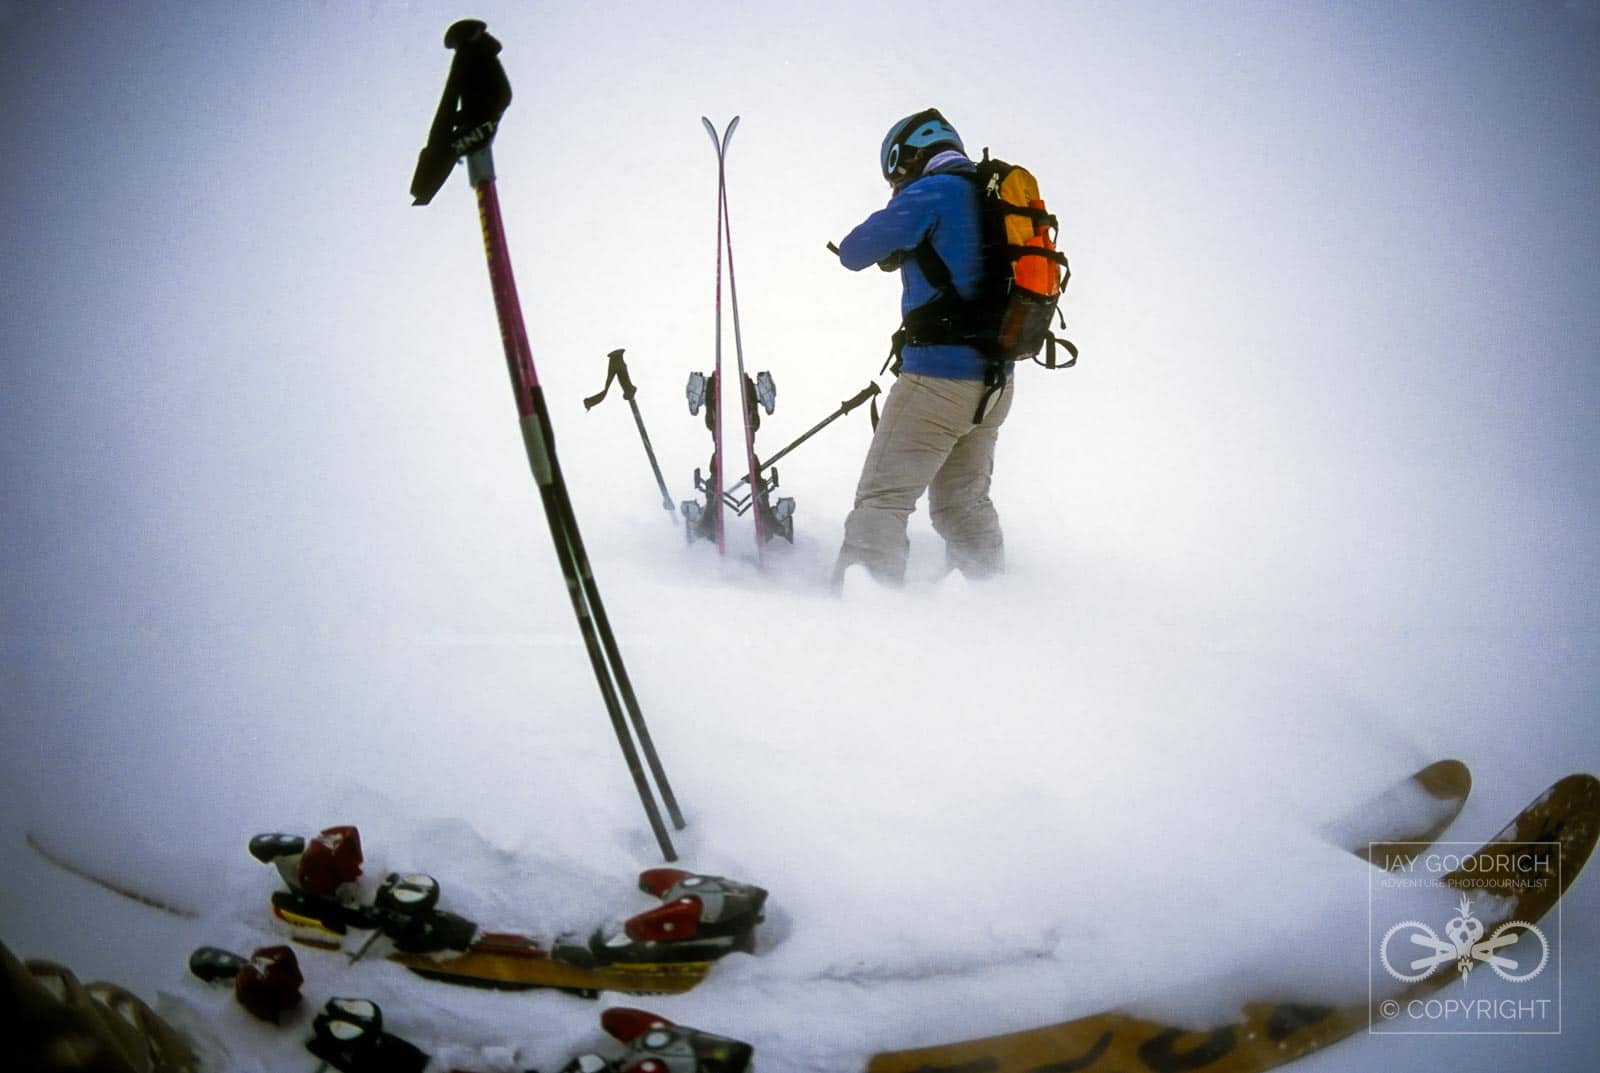 Concepts for Photographers - Skiing Photo on Velvia by Jay Goodrich